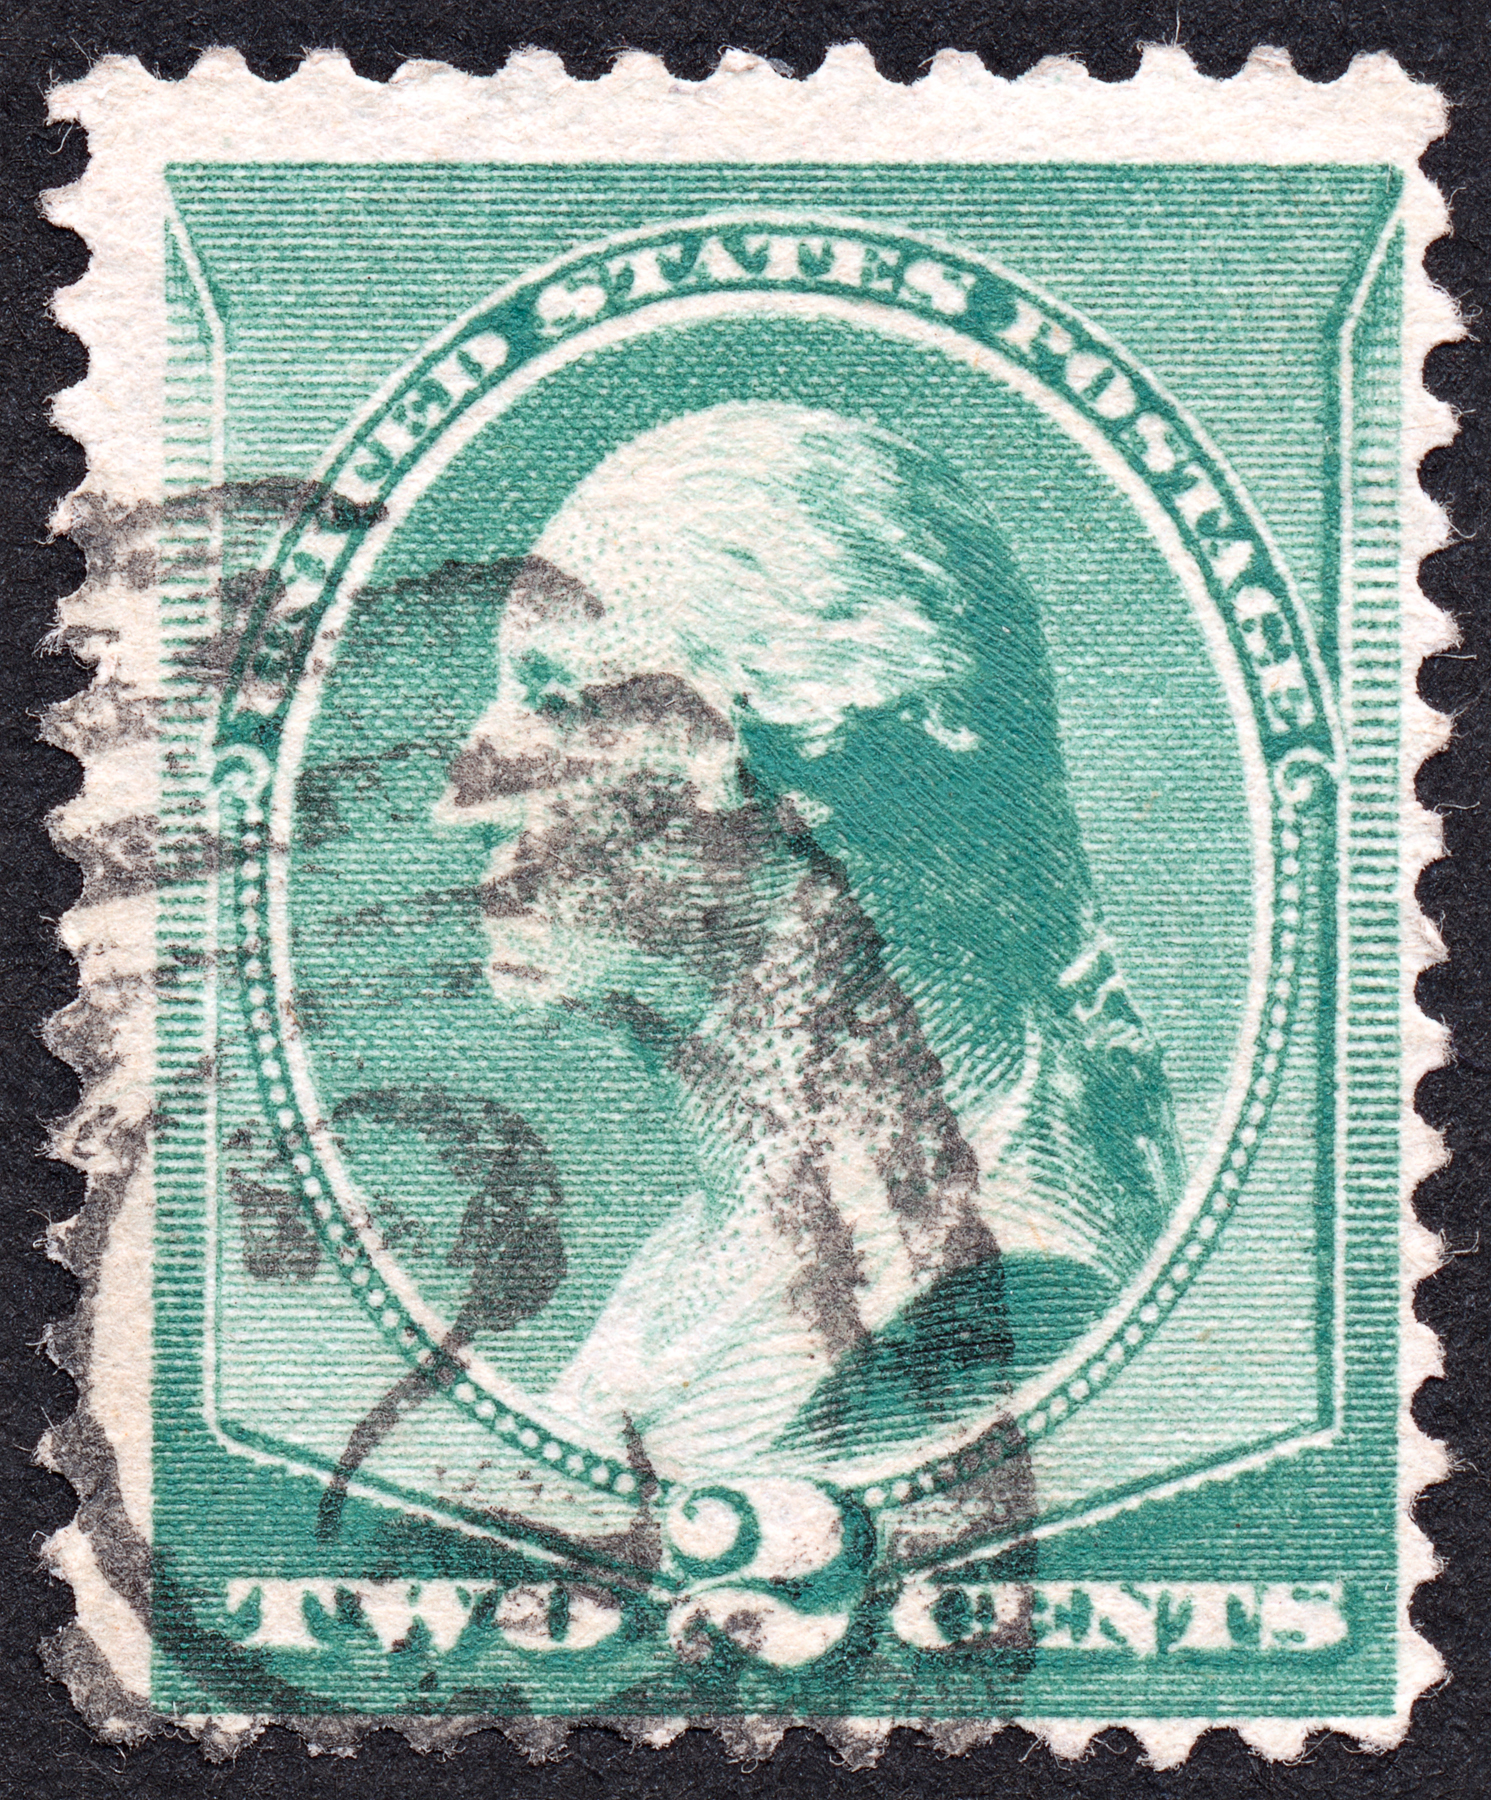 Green george washington stamp photo